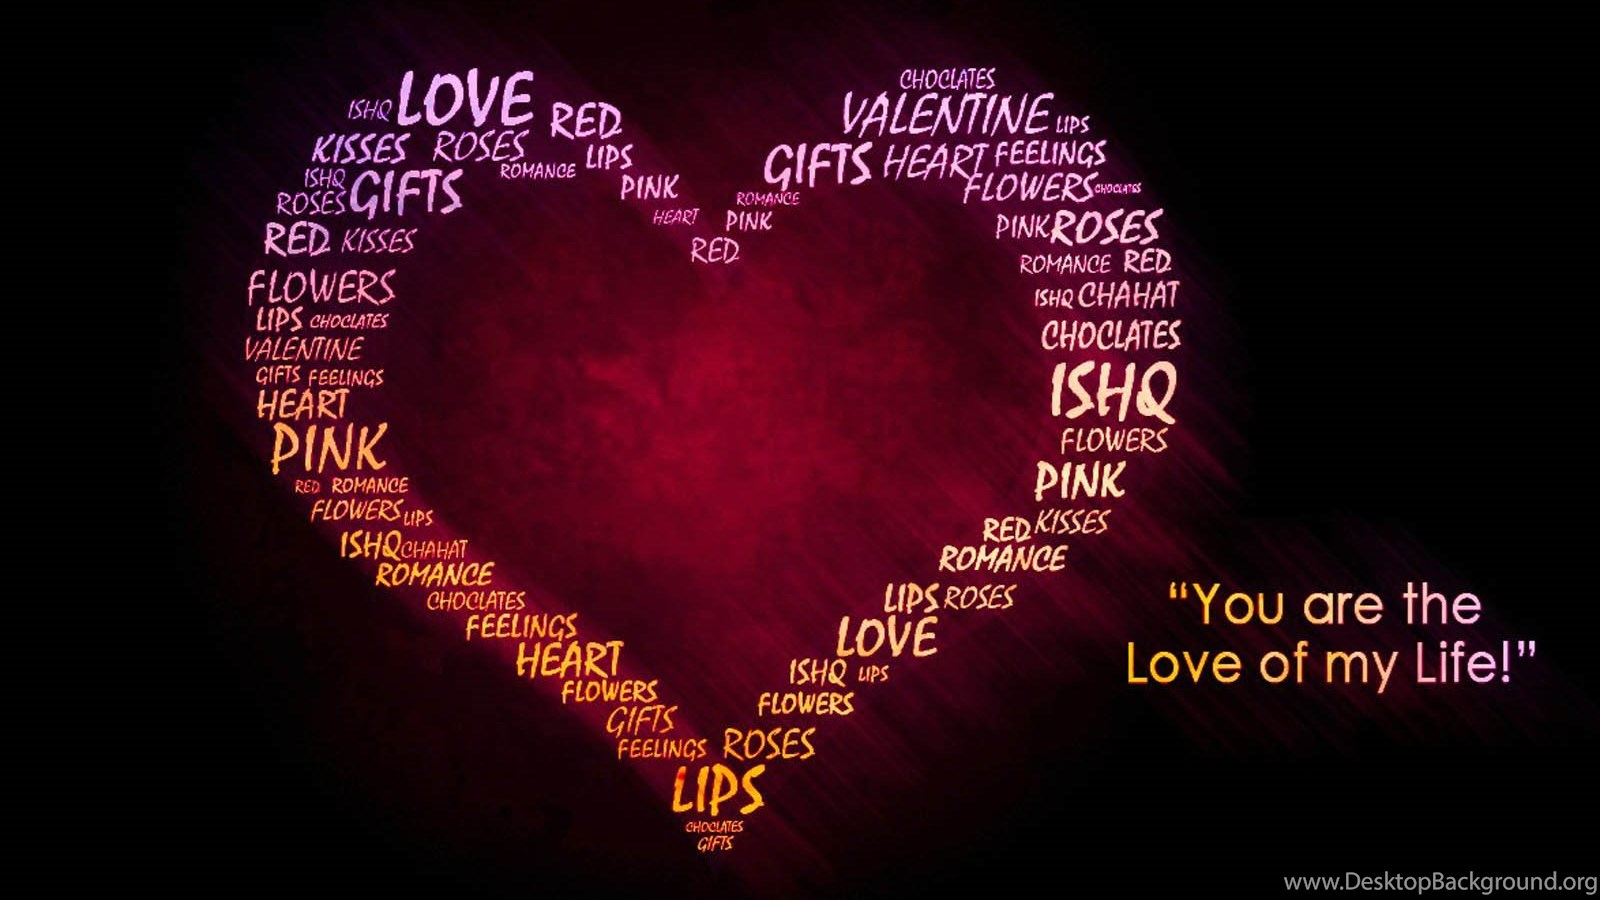 Wallpaper: Love Quotes Wallpapers On Zedge Desktop Background